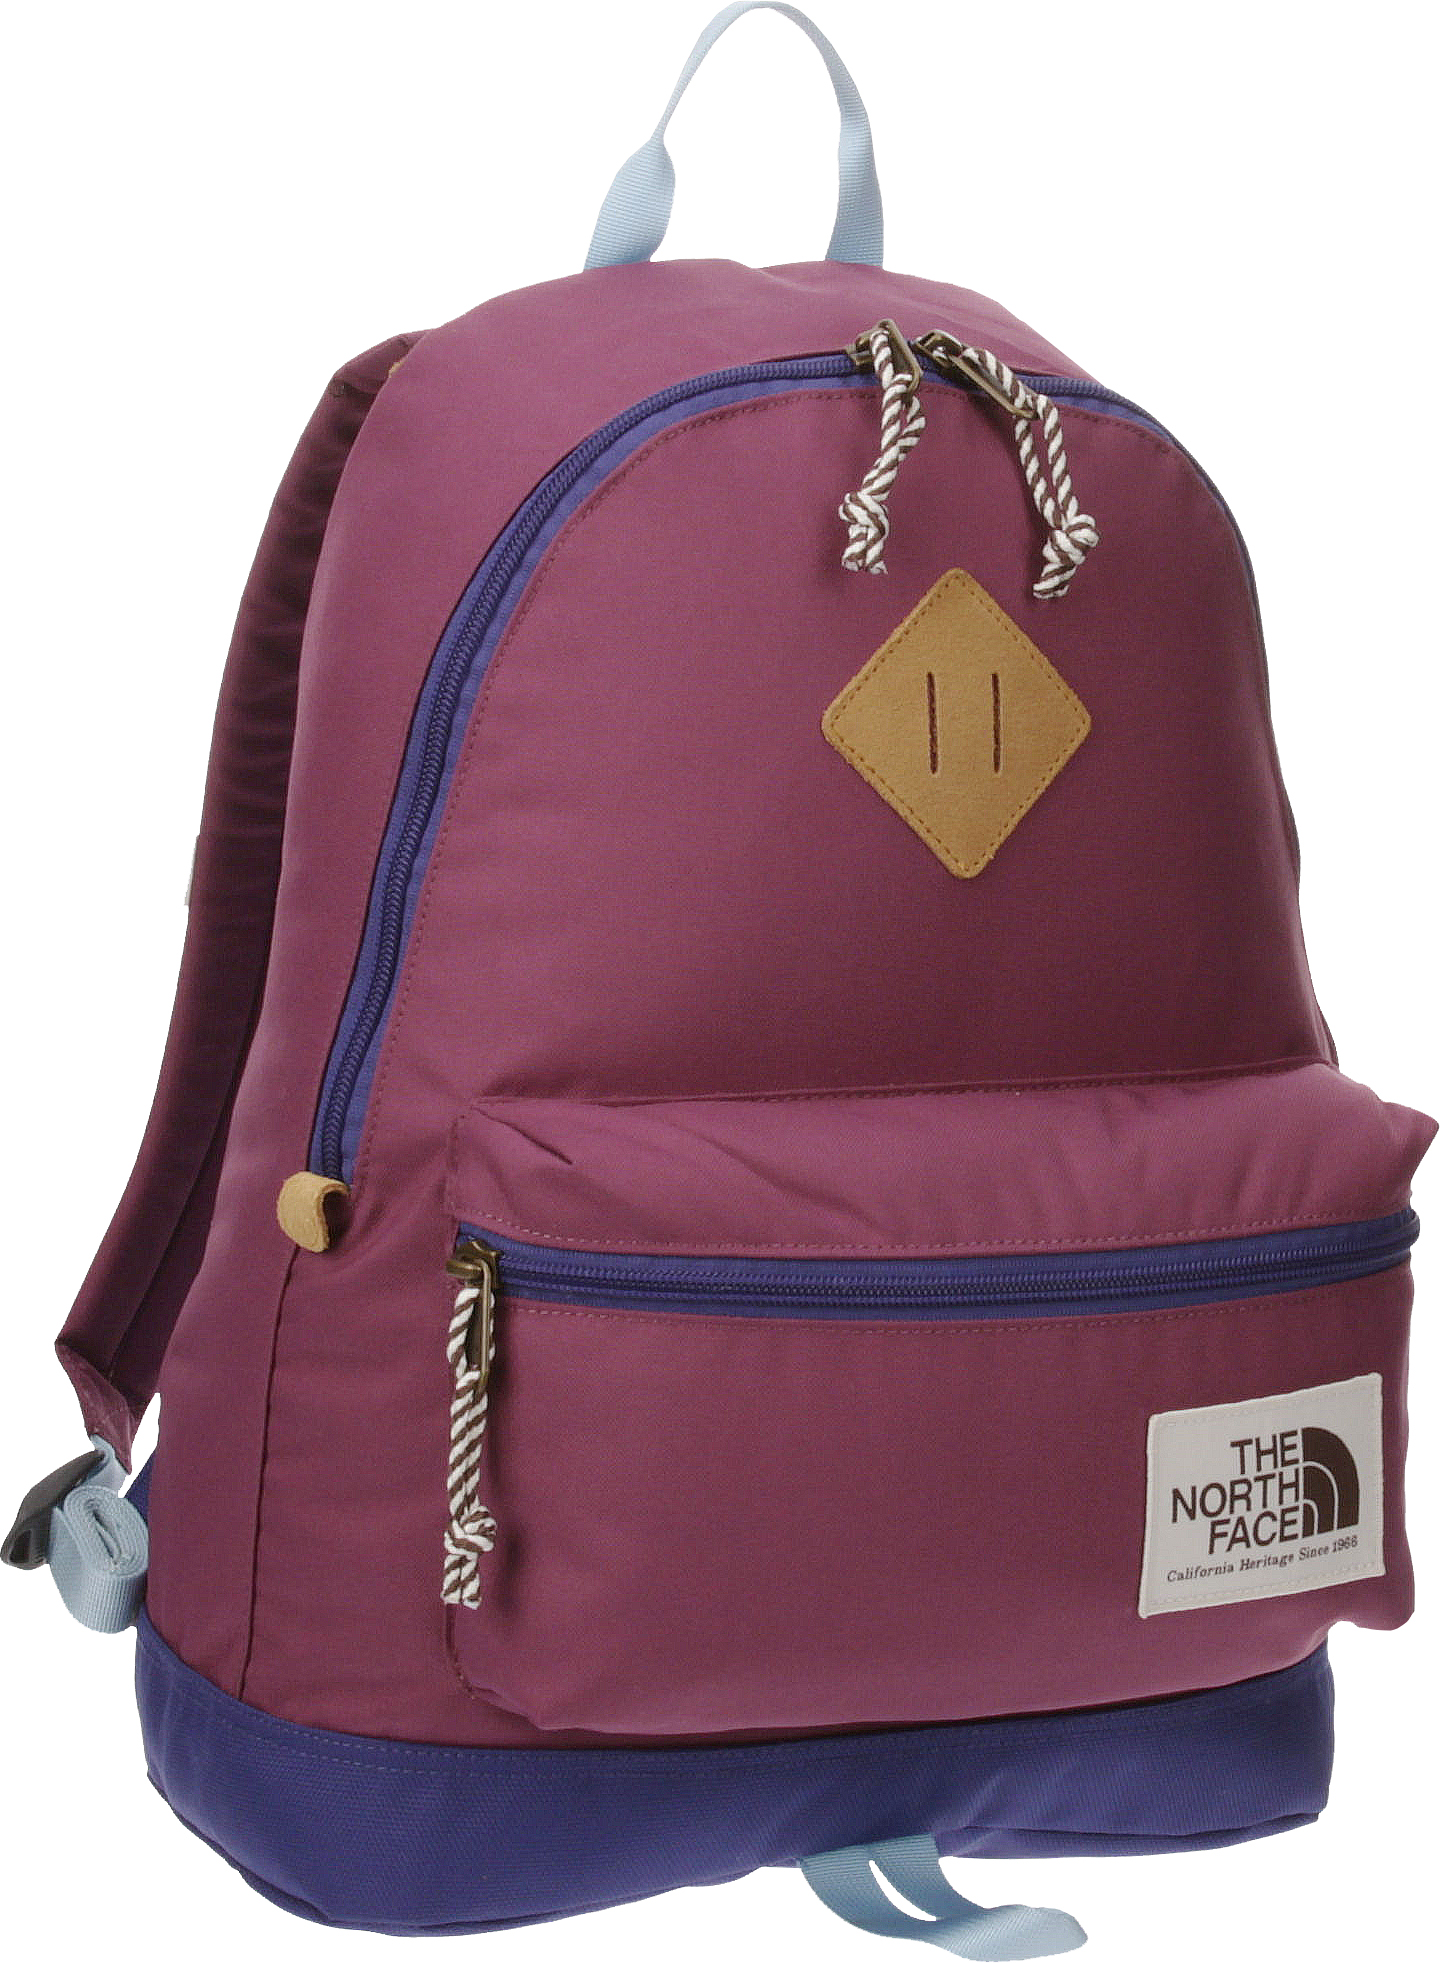 The North Face Kids' Mini Berkeley Backpack - view number 2